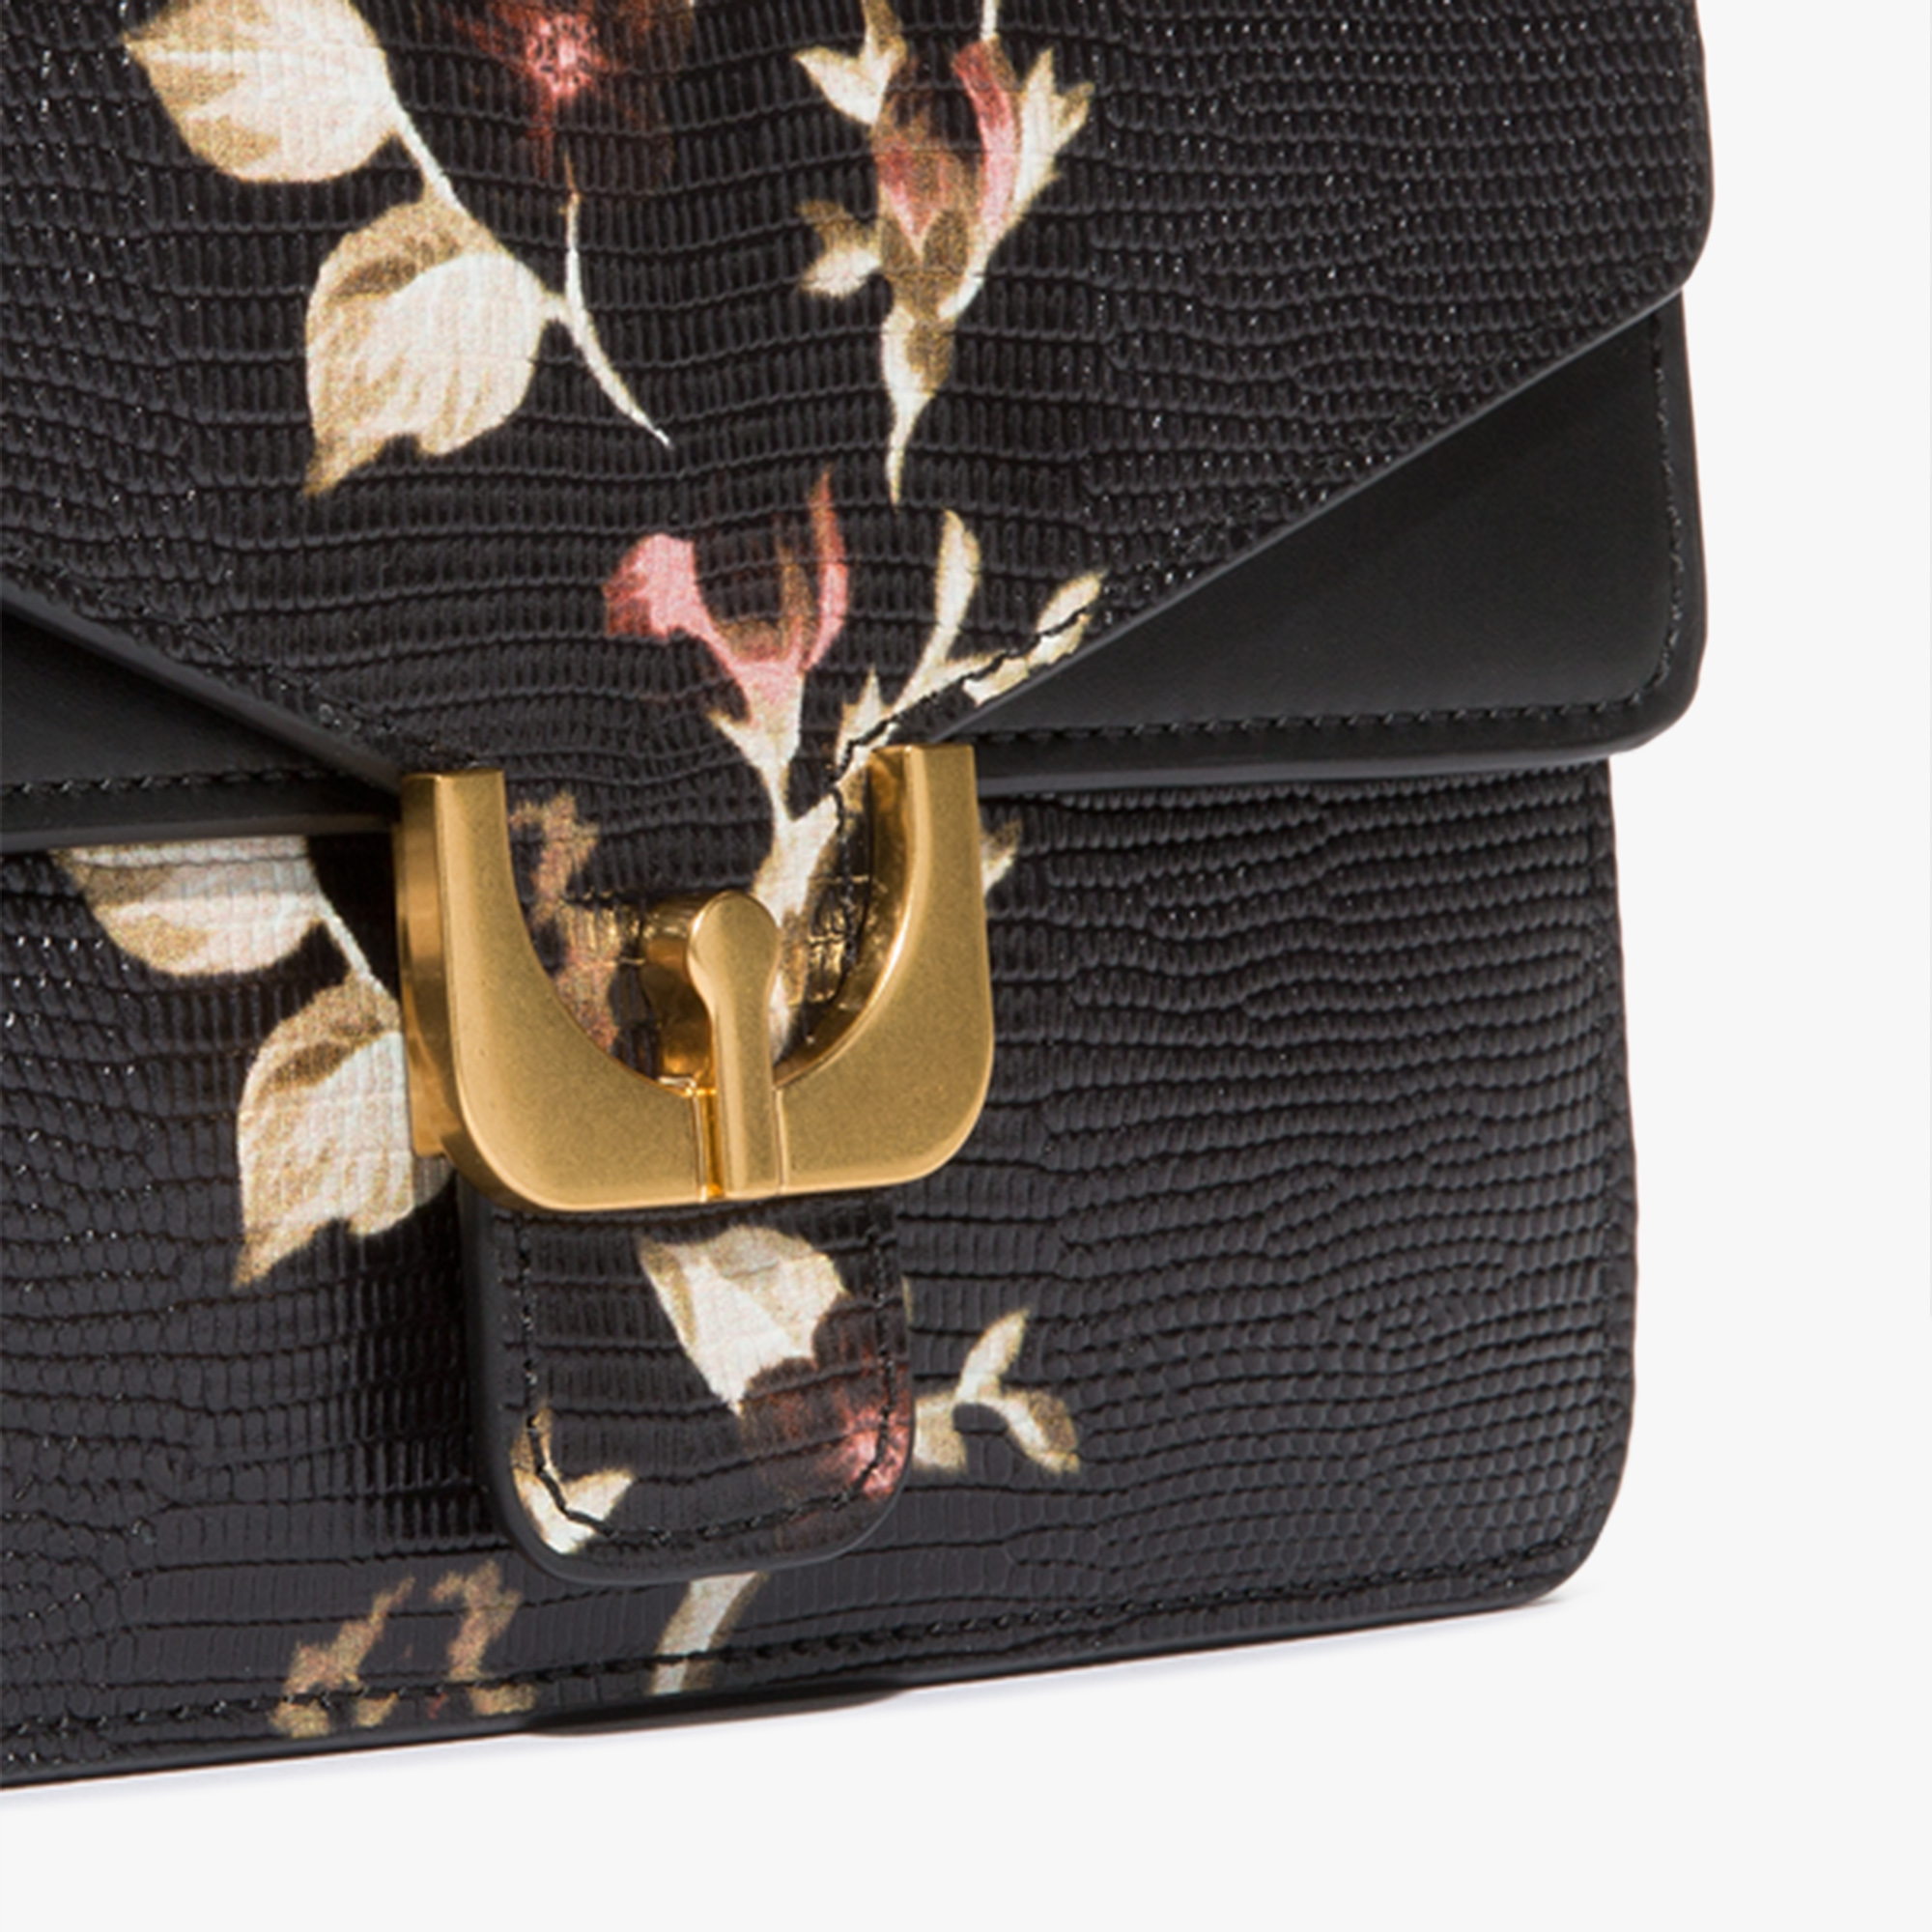 Coccinelle Ambrine clutch in lizard-print leather